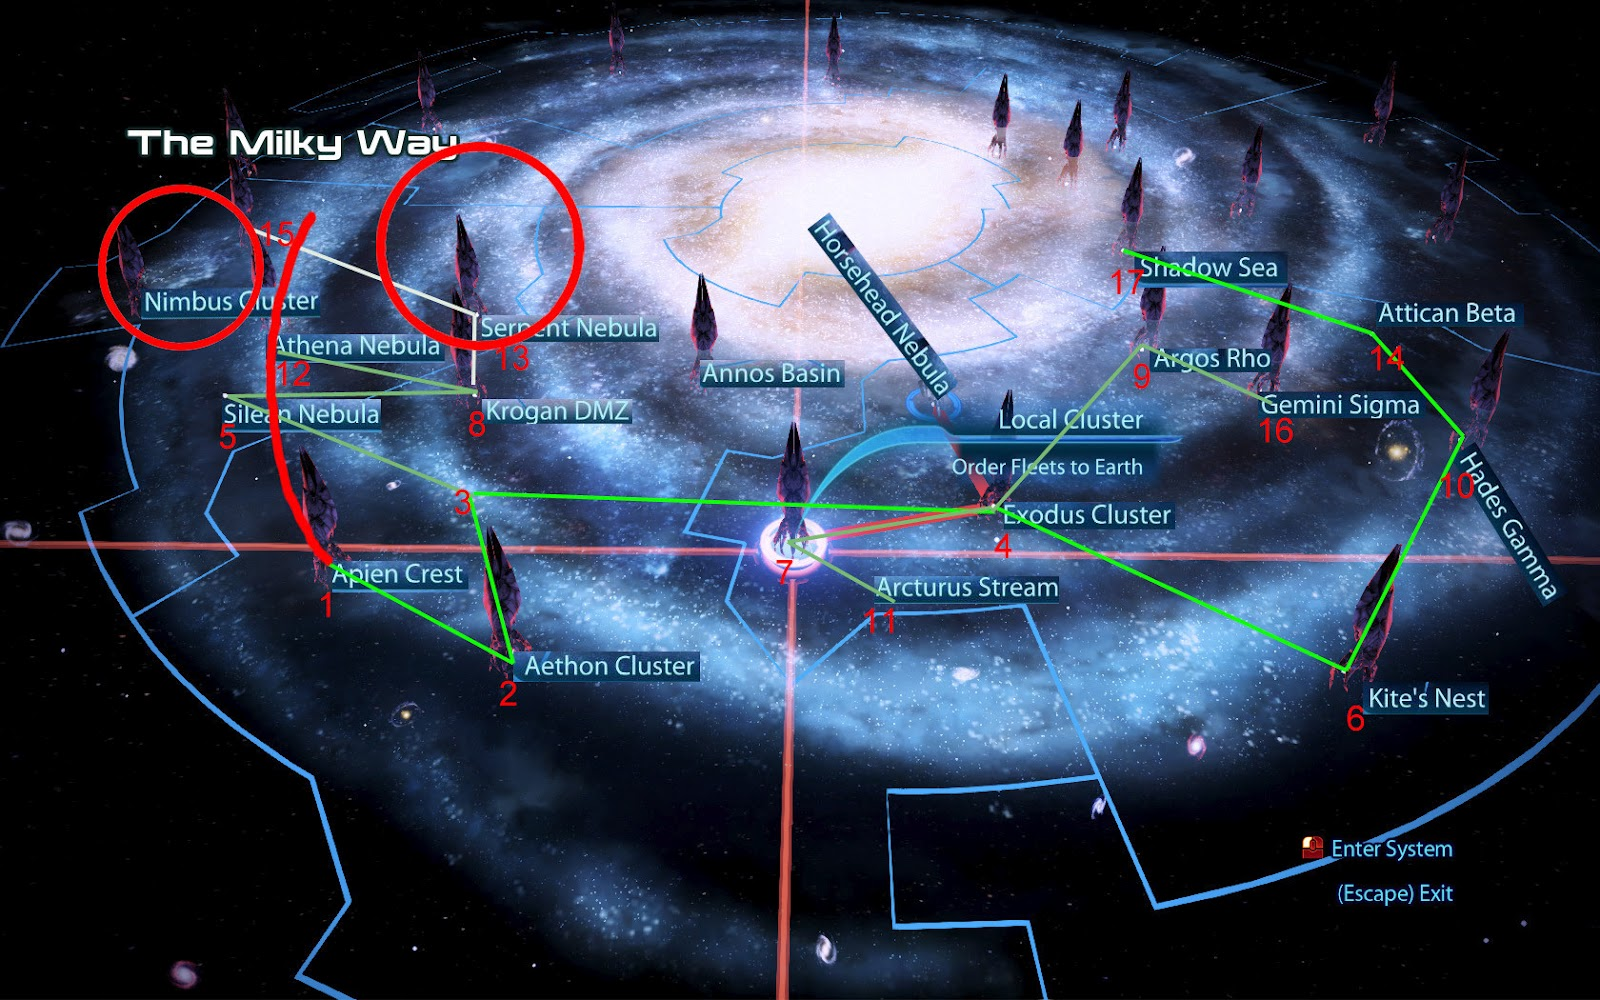 Mass Effect Indoctrination: 6. Other Thoughts, Theories ...